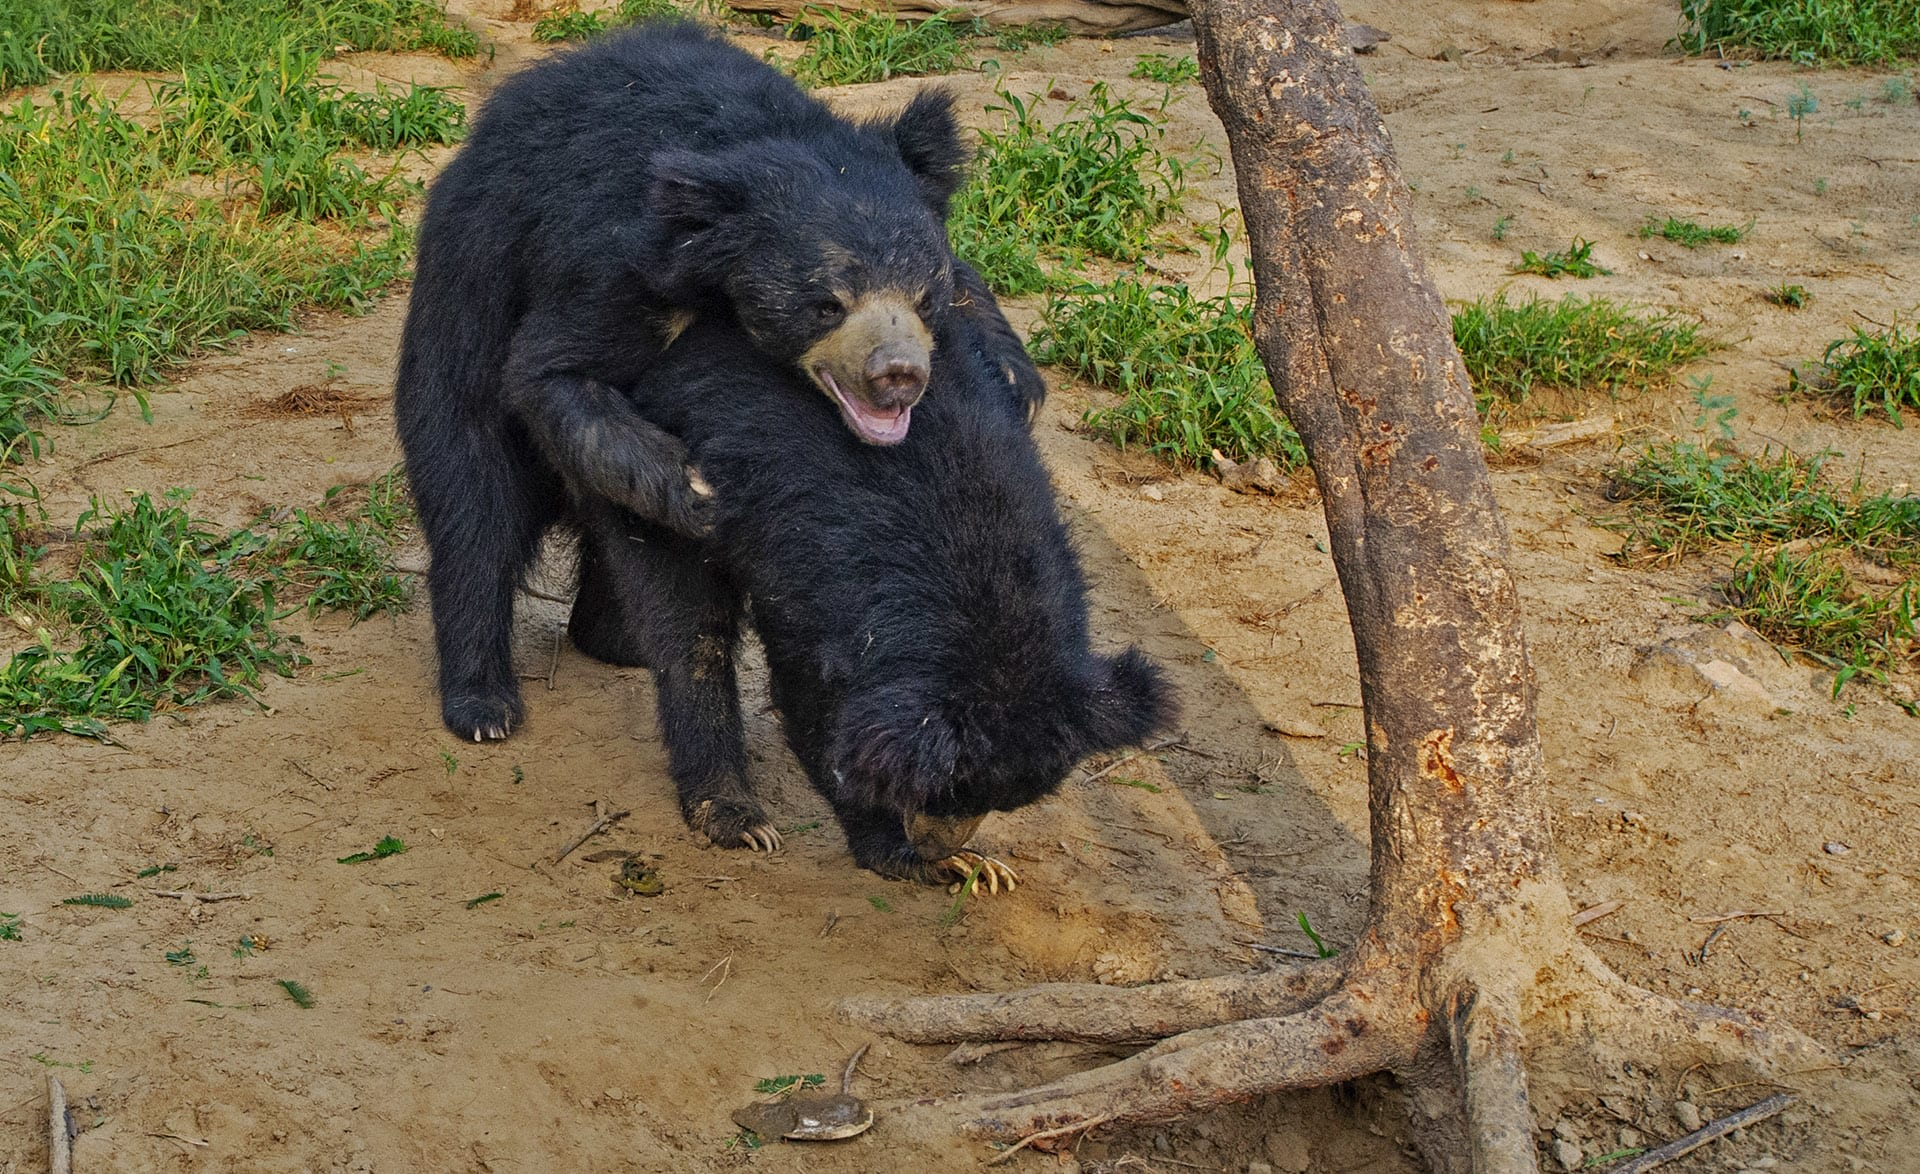 """According to the IUCN, """"sloth bears typically breed May through July, and females give birth, usually to one or two cubs, from November to January."""" Females birth their young in cavernous dens and look after their young for up to two years after they are born. Males are not involved in the parenting process, but camera-trap studies by Wildlife SOS """"report the use of chemical communication techniques by the male bears in order to mark the den sites. These include pede-marking [marking made with feet], defecation, urination and rubbing or scratching against trees."""""""